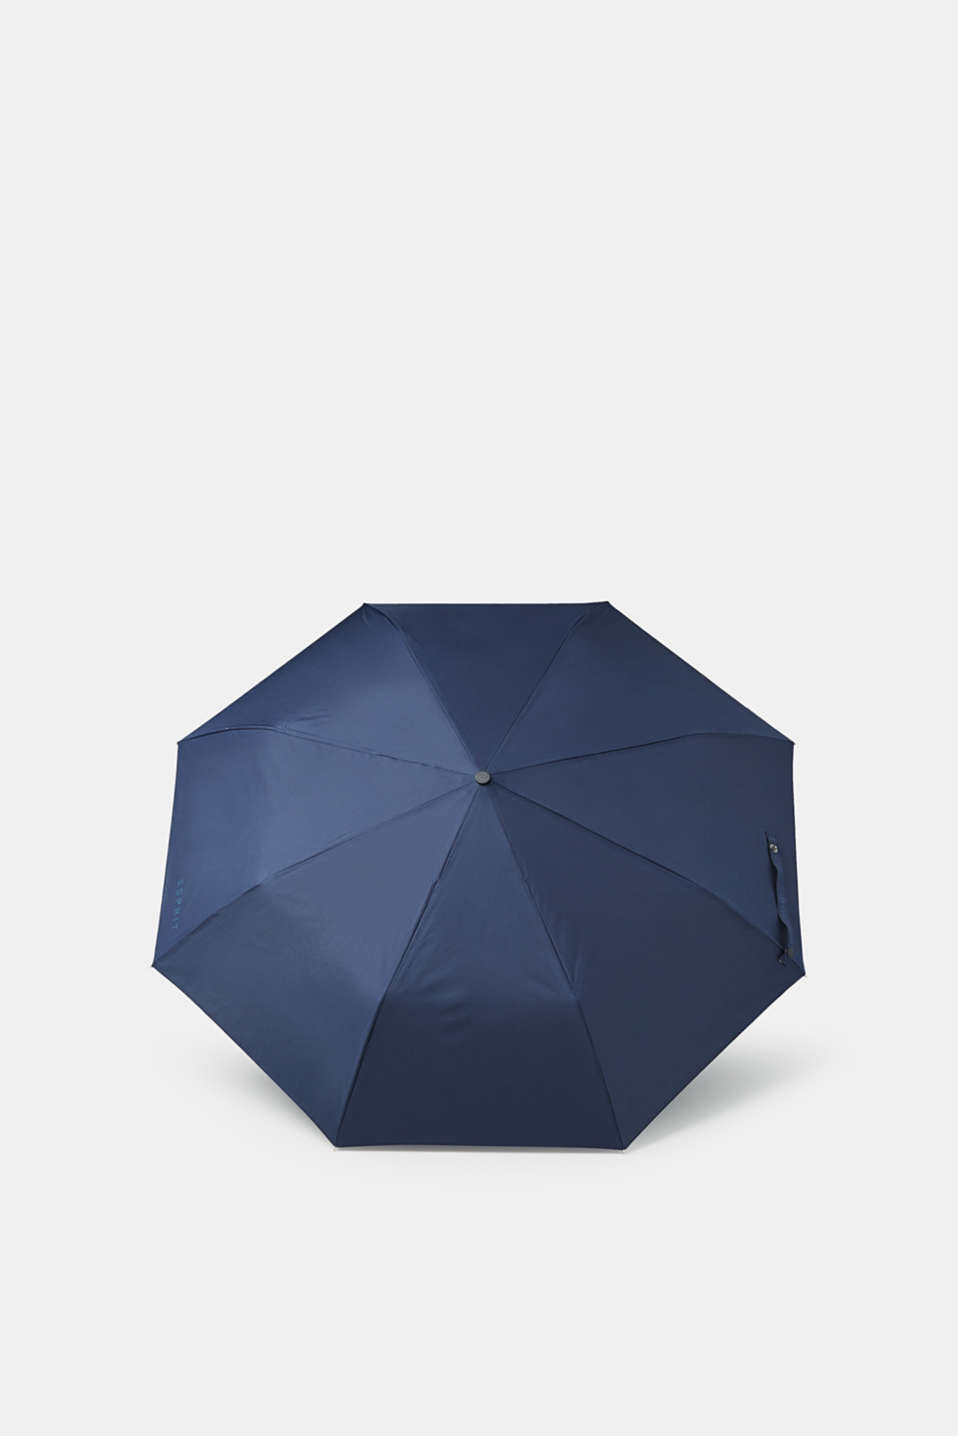 with a push/pull slide: lightweight pocket umbrella in a handy size (approx. 5.5 x 5.5 x 23.5 cm)